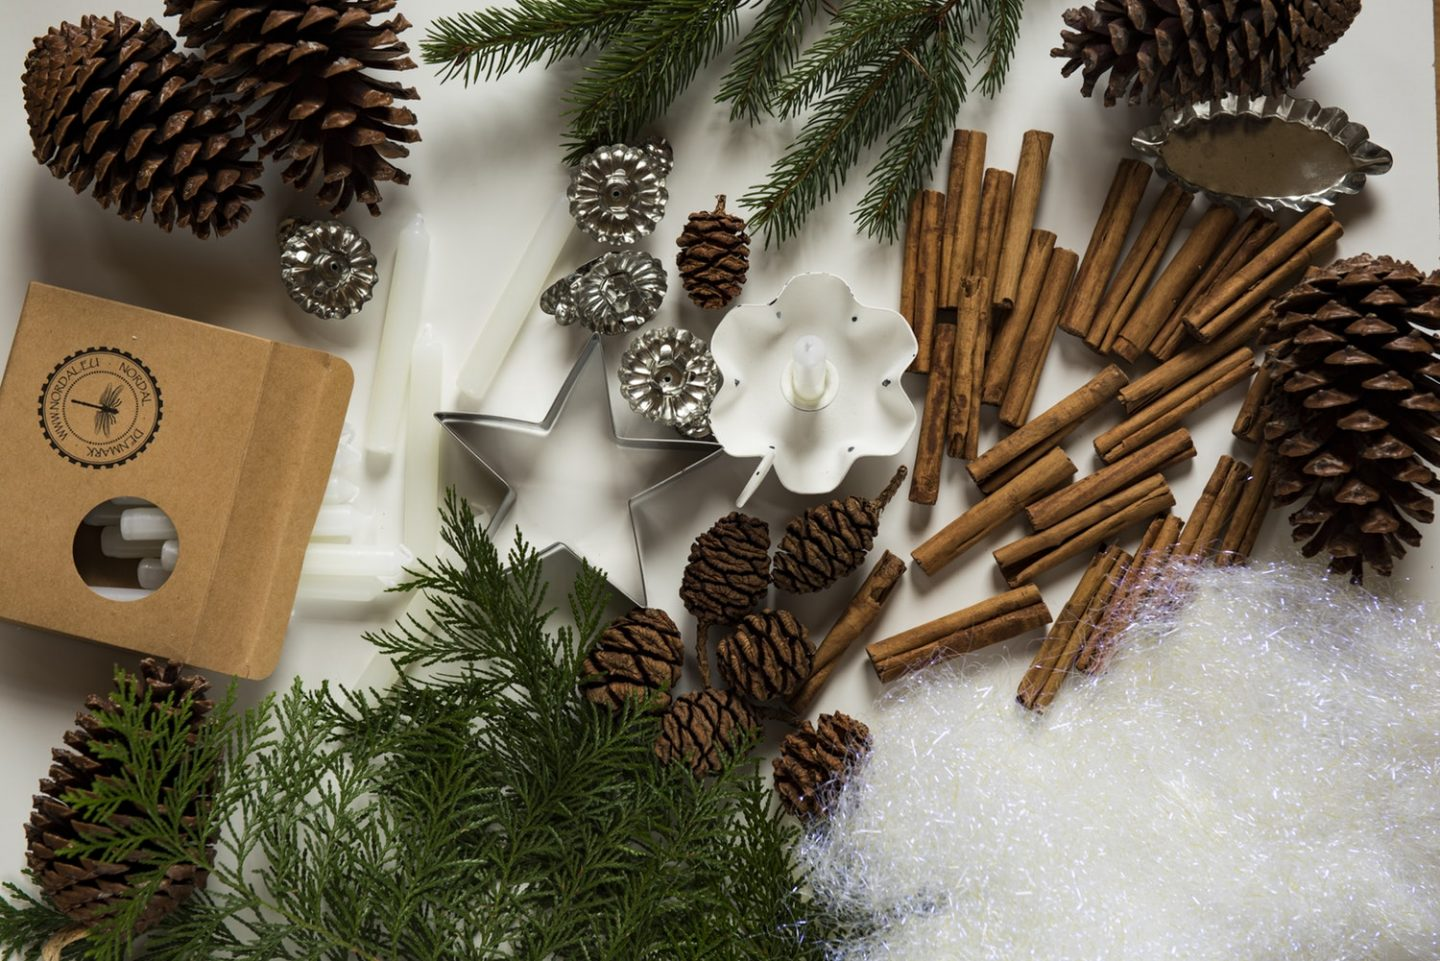 Preparing Your Home for Family Visits and Festivities